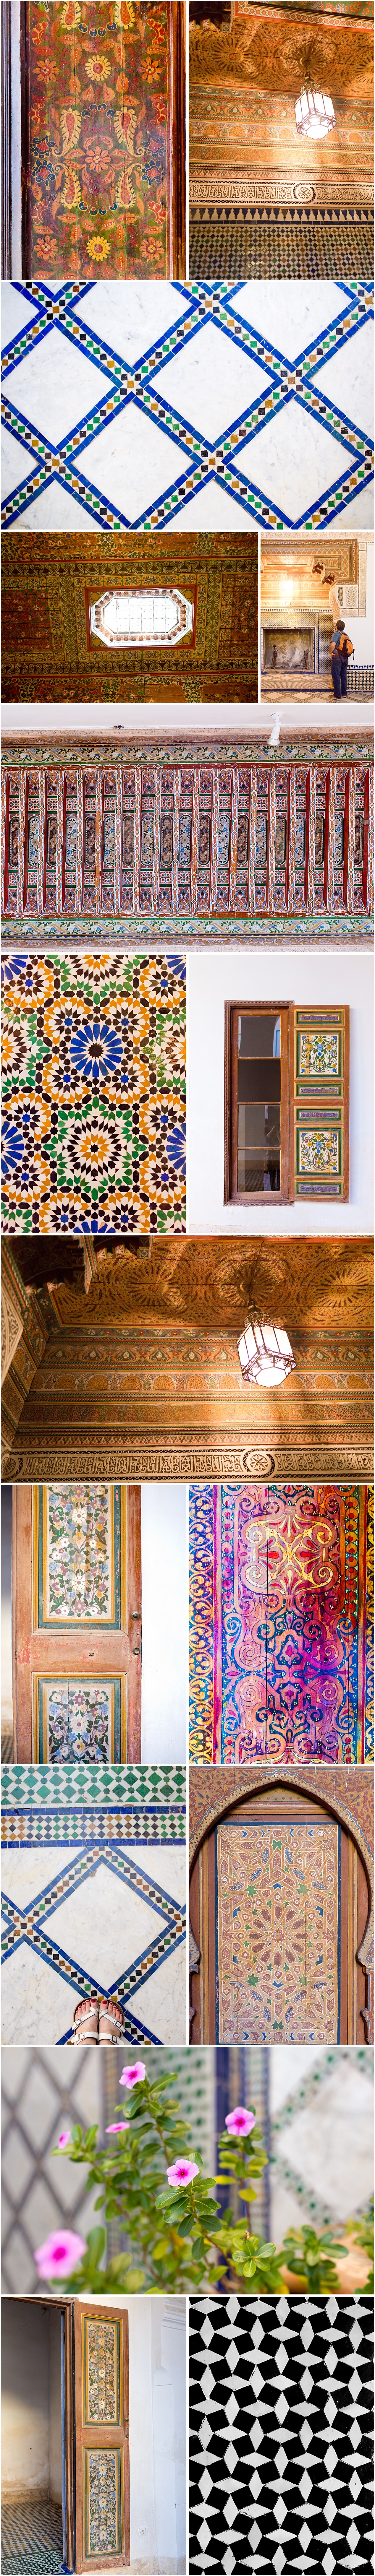 colorful tile and wood paintings at Bahia Palace in Morocco